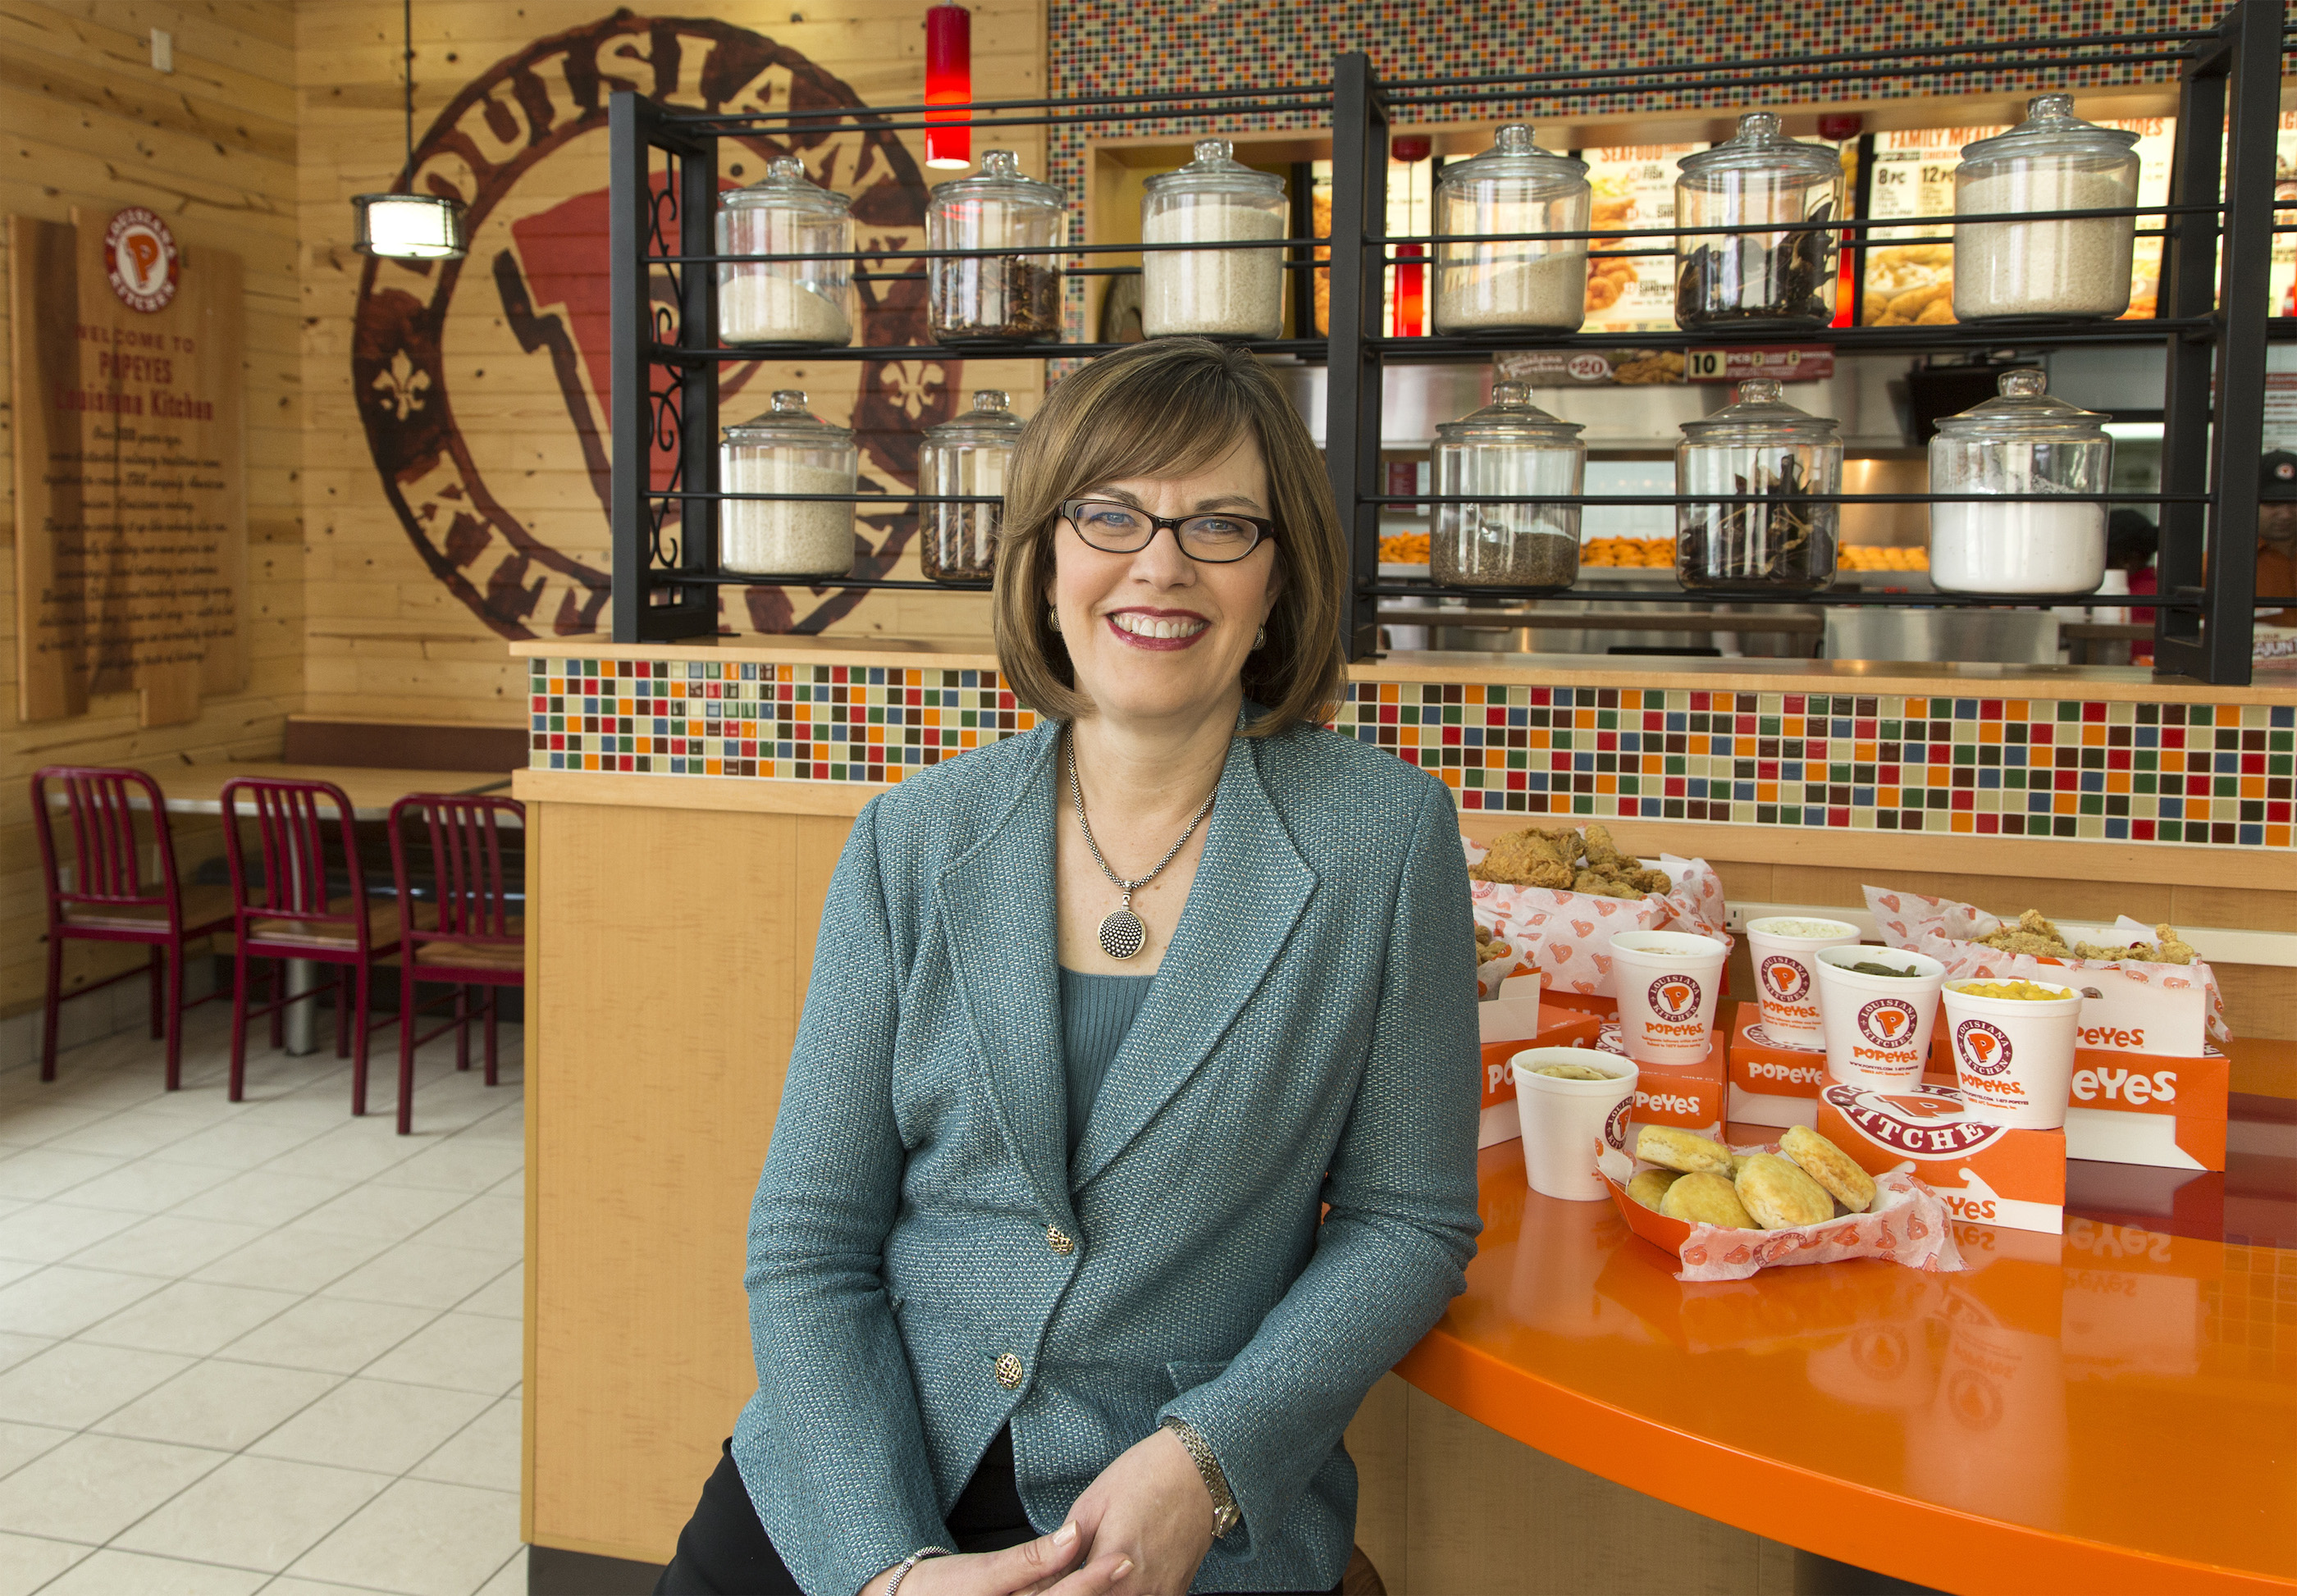 Cheryl Bachelder, Used by Permission